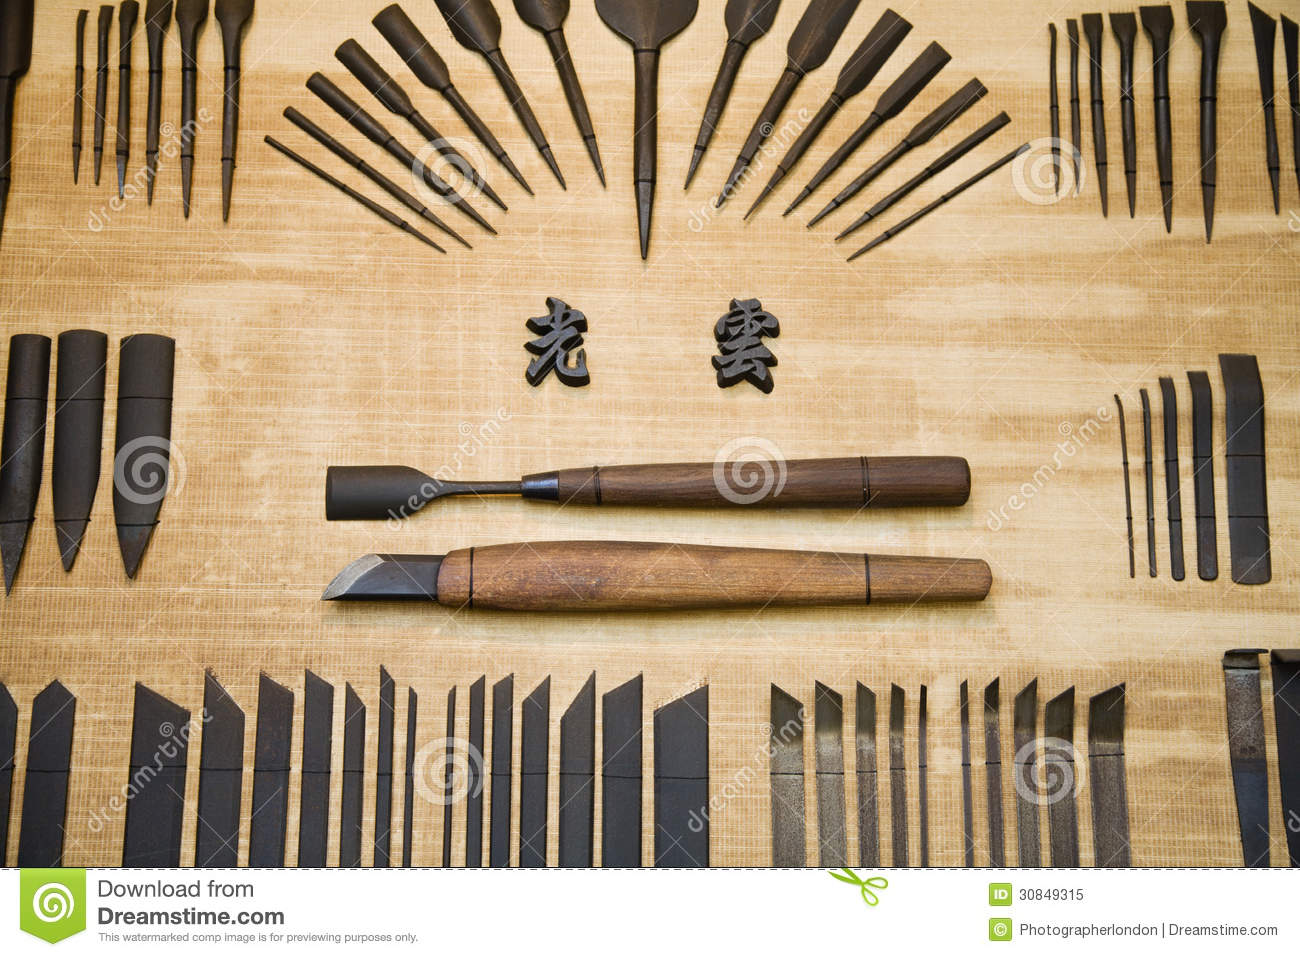 Japanese Woodworking Tools Stock Image Image Of Aligning 30849315